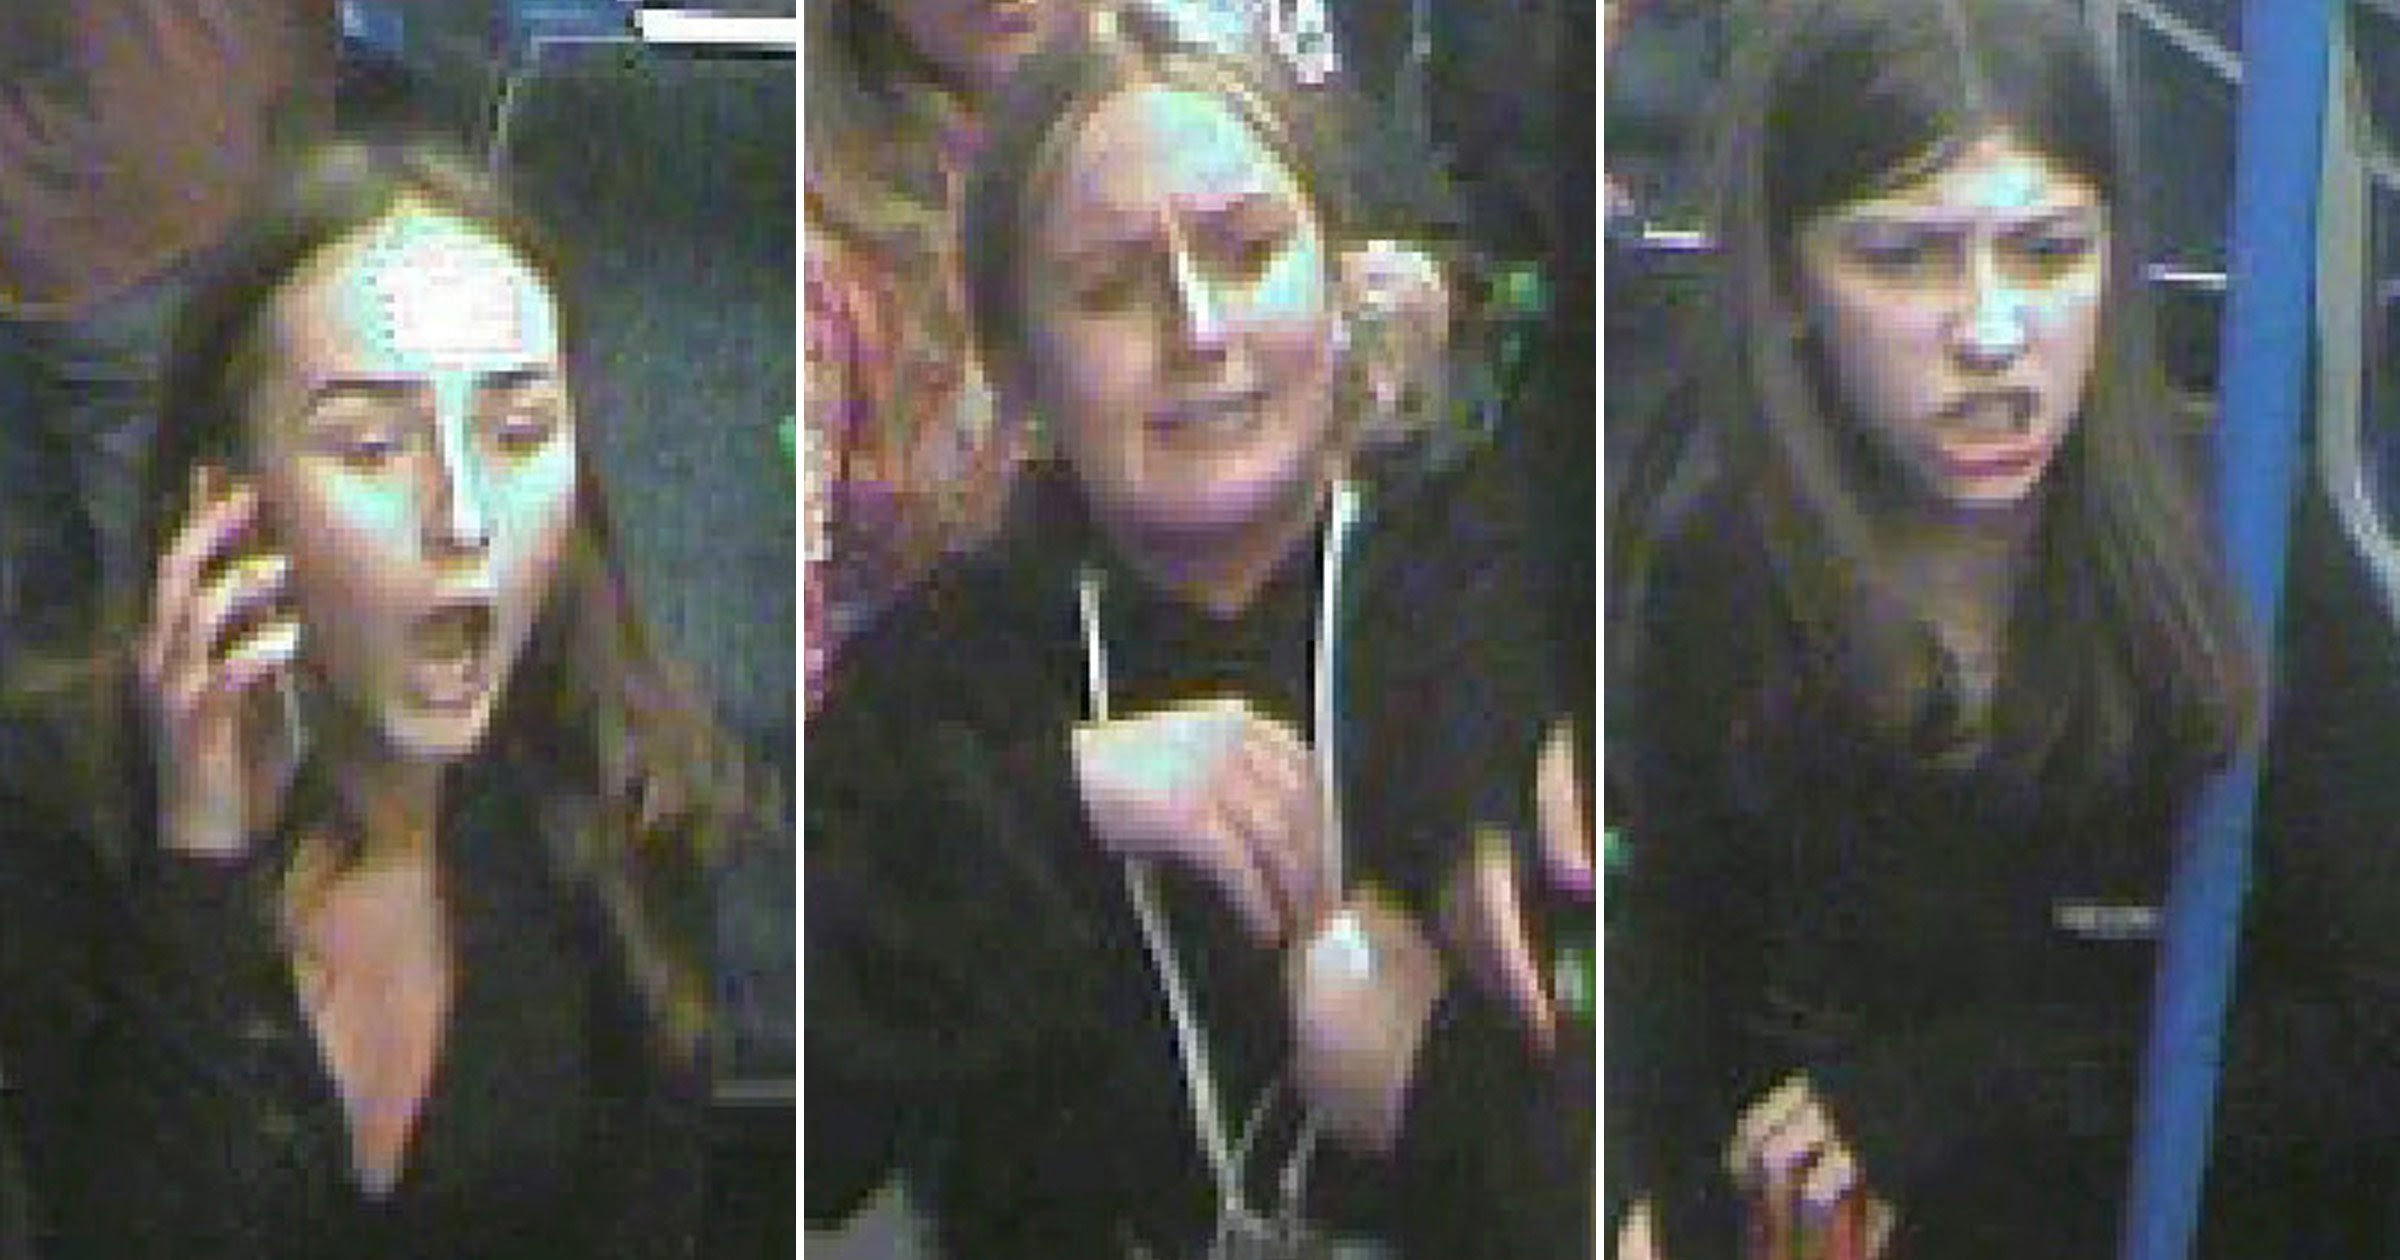 London-Dartford train passengers attacked with bottles as girls hunted